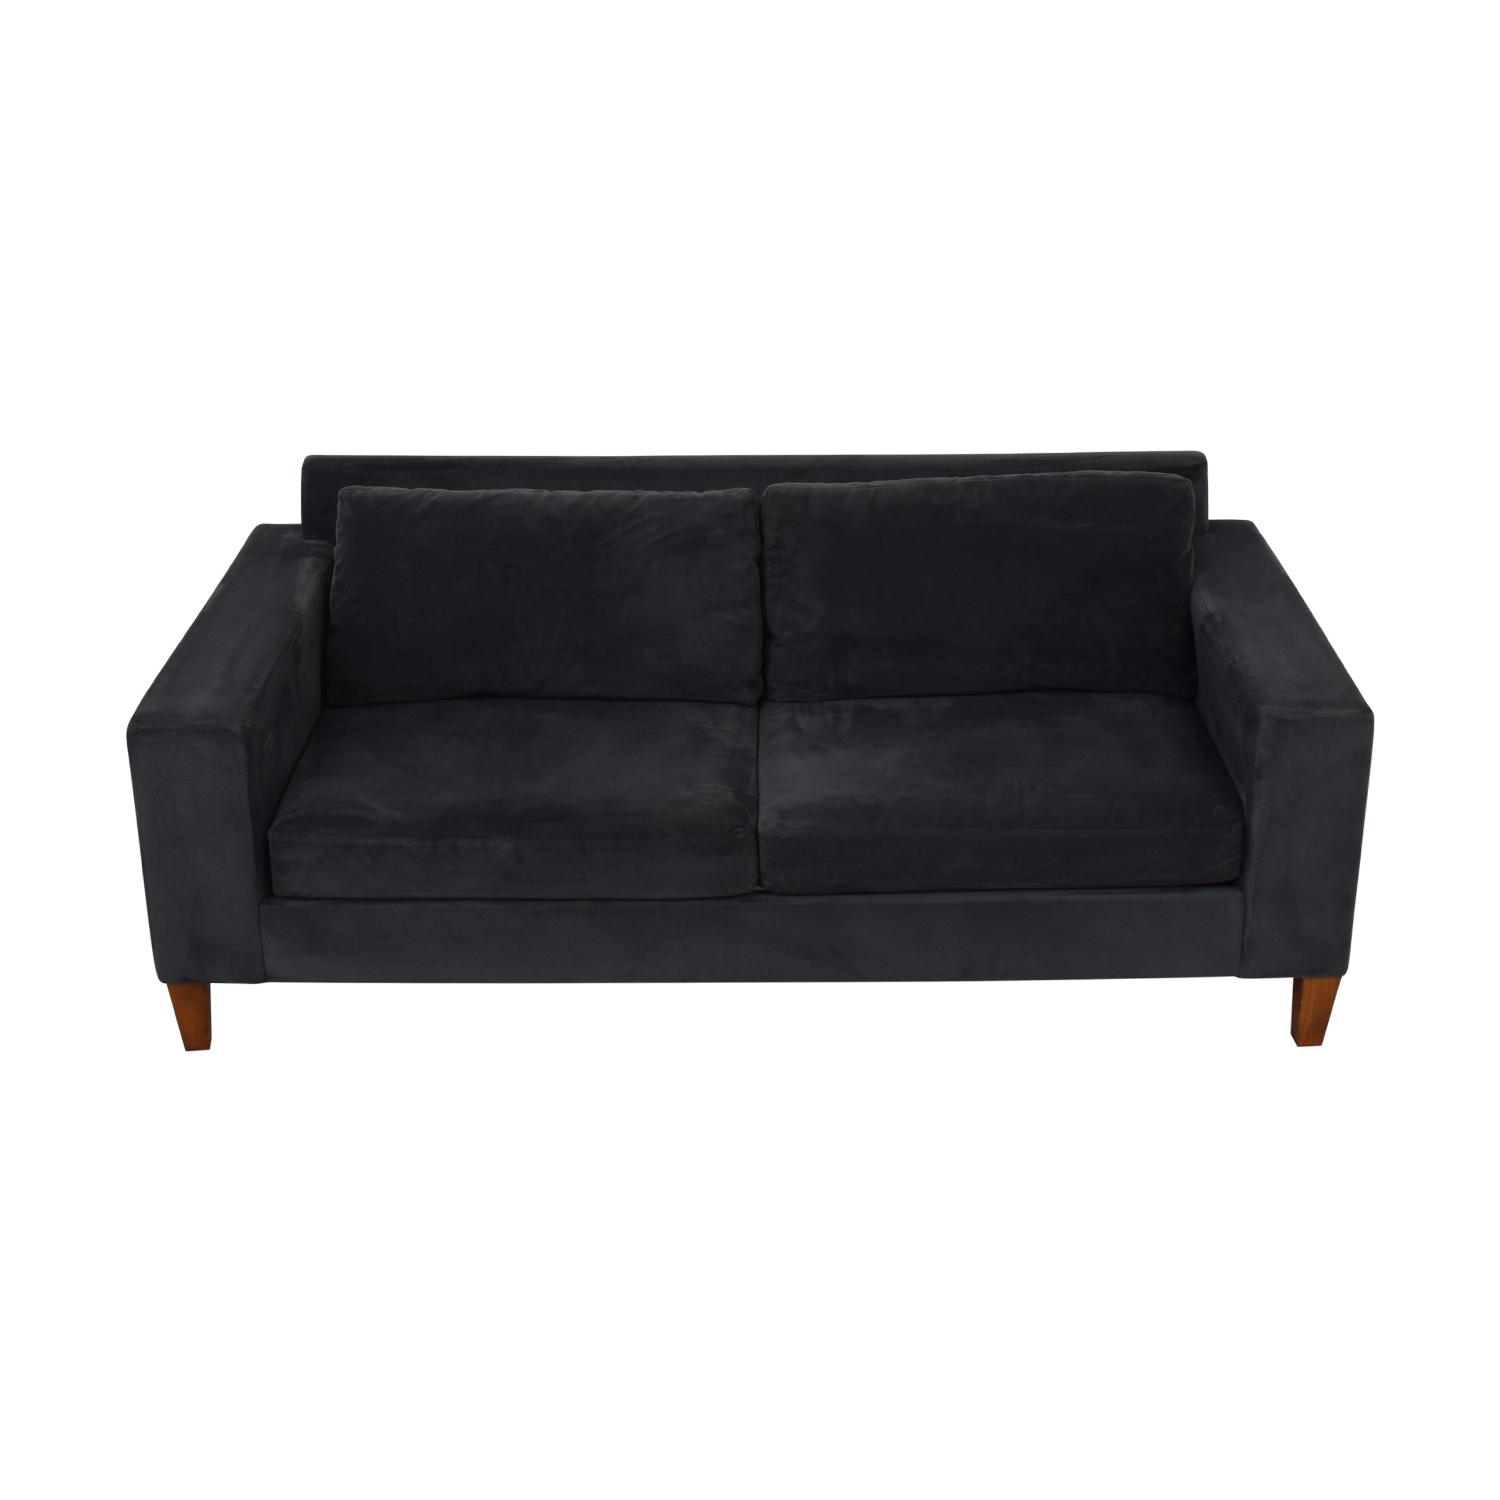 West Elm York Sofa / Classic Sofas